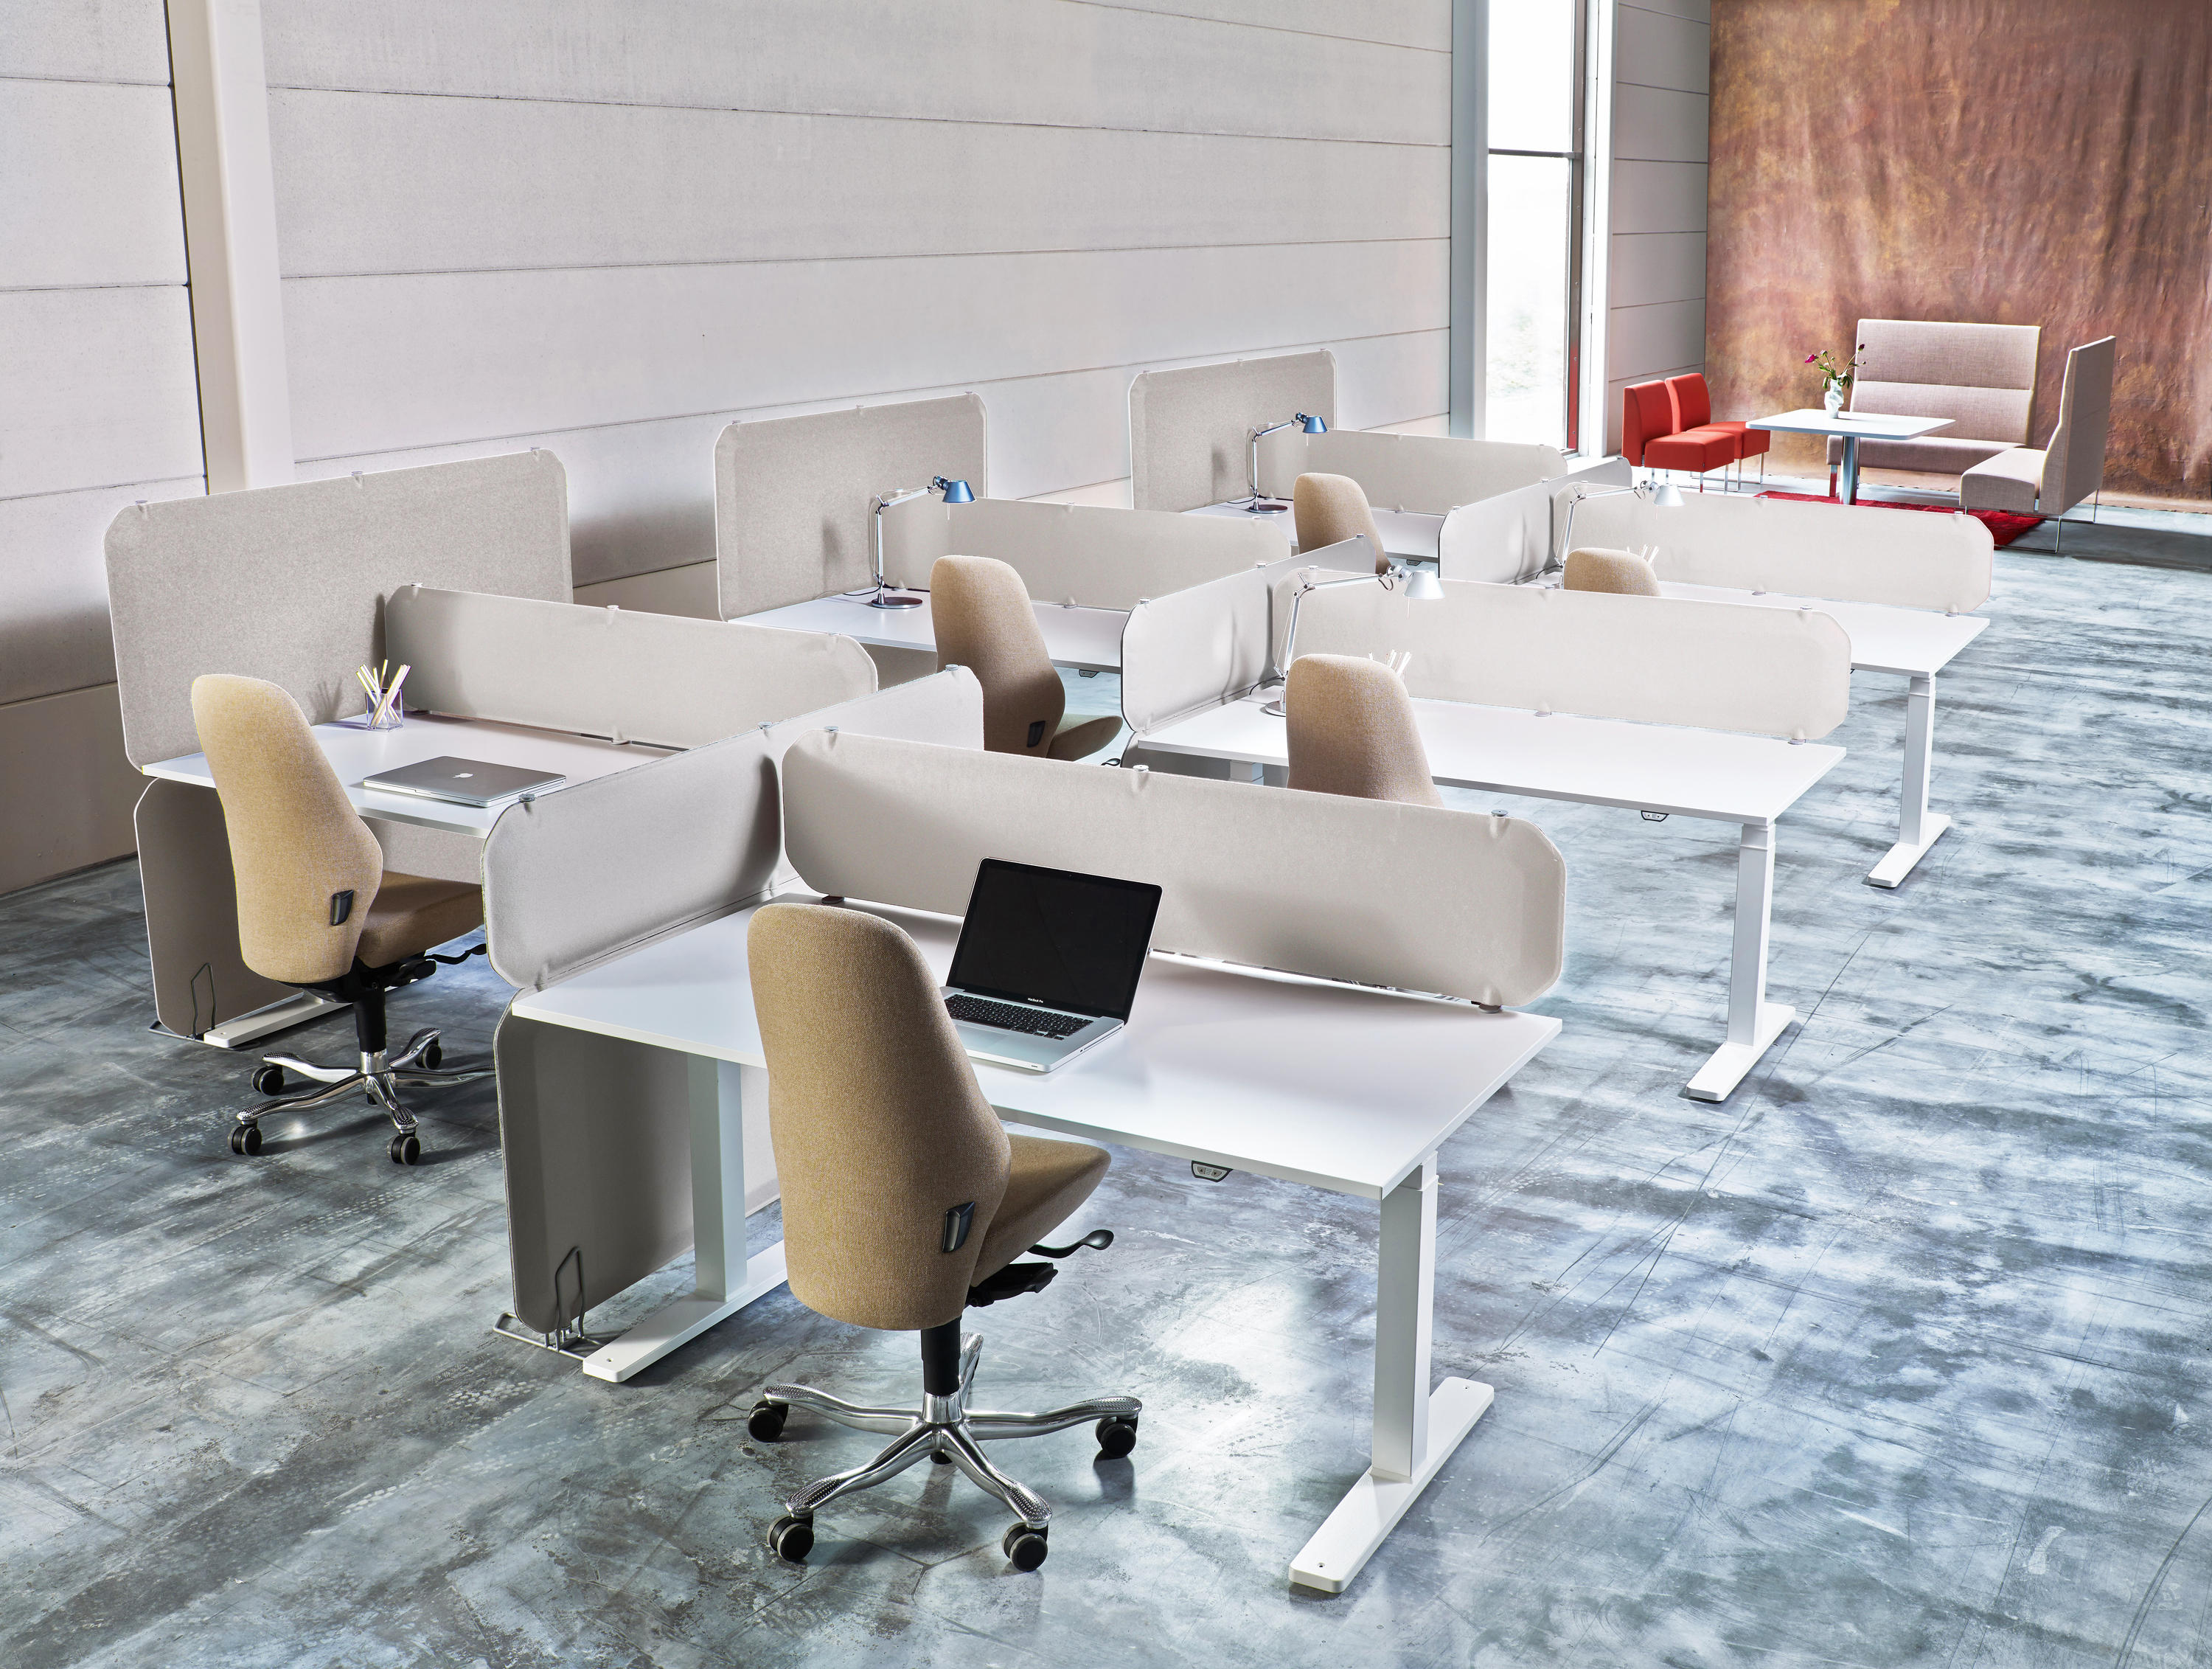 PRIM - Room-dividing systems from Kinnarps | Architonic